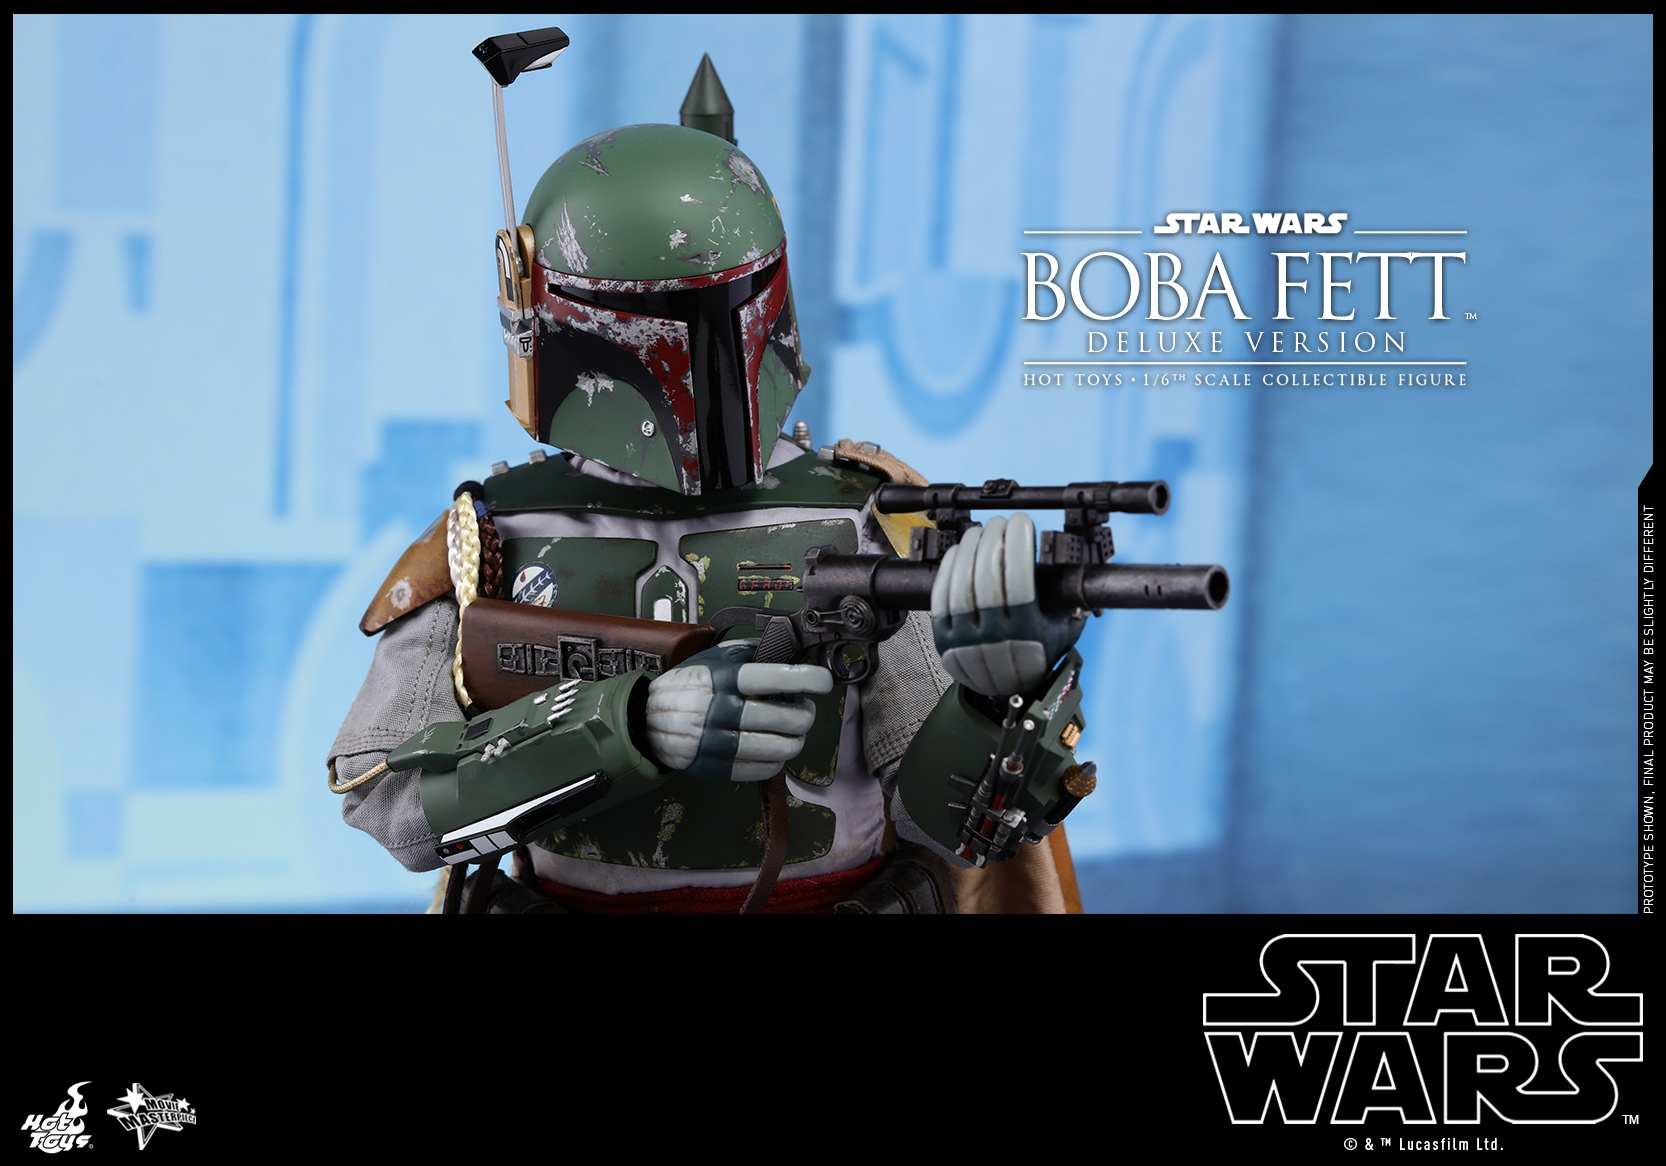 Hot Toys - Star Wars - Boba Fett collectible figure (Deluxe)_PR29.jpg